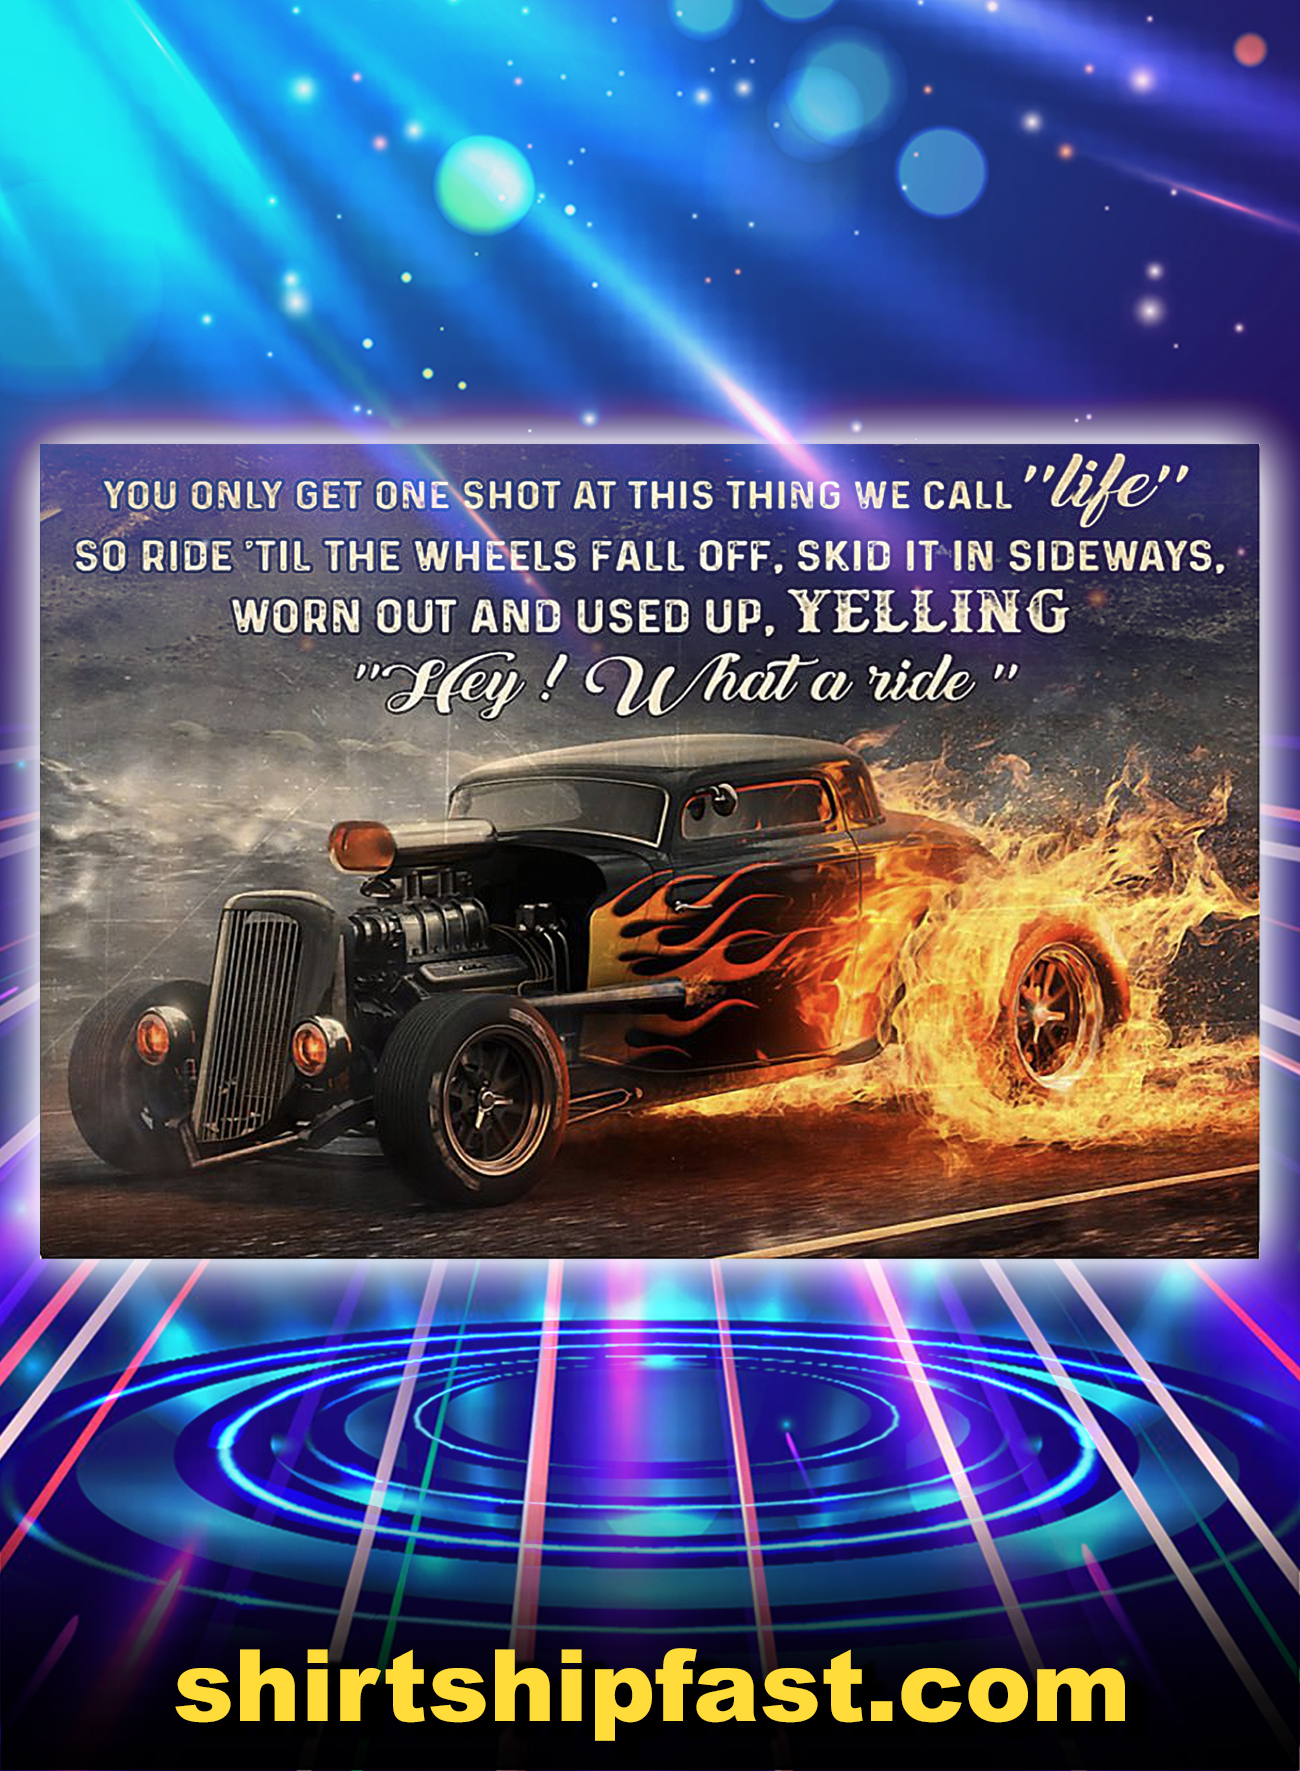 Hot rod what a ride poster - A4